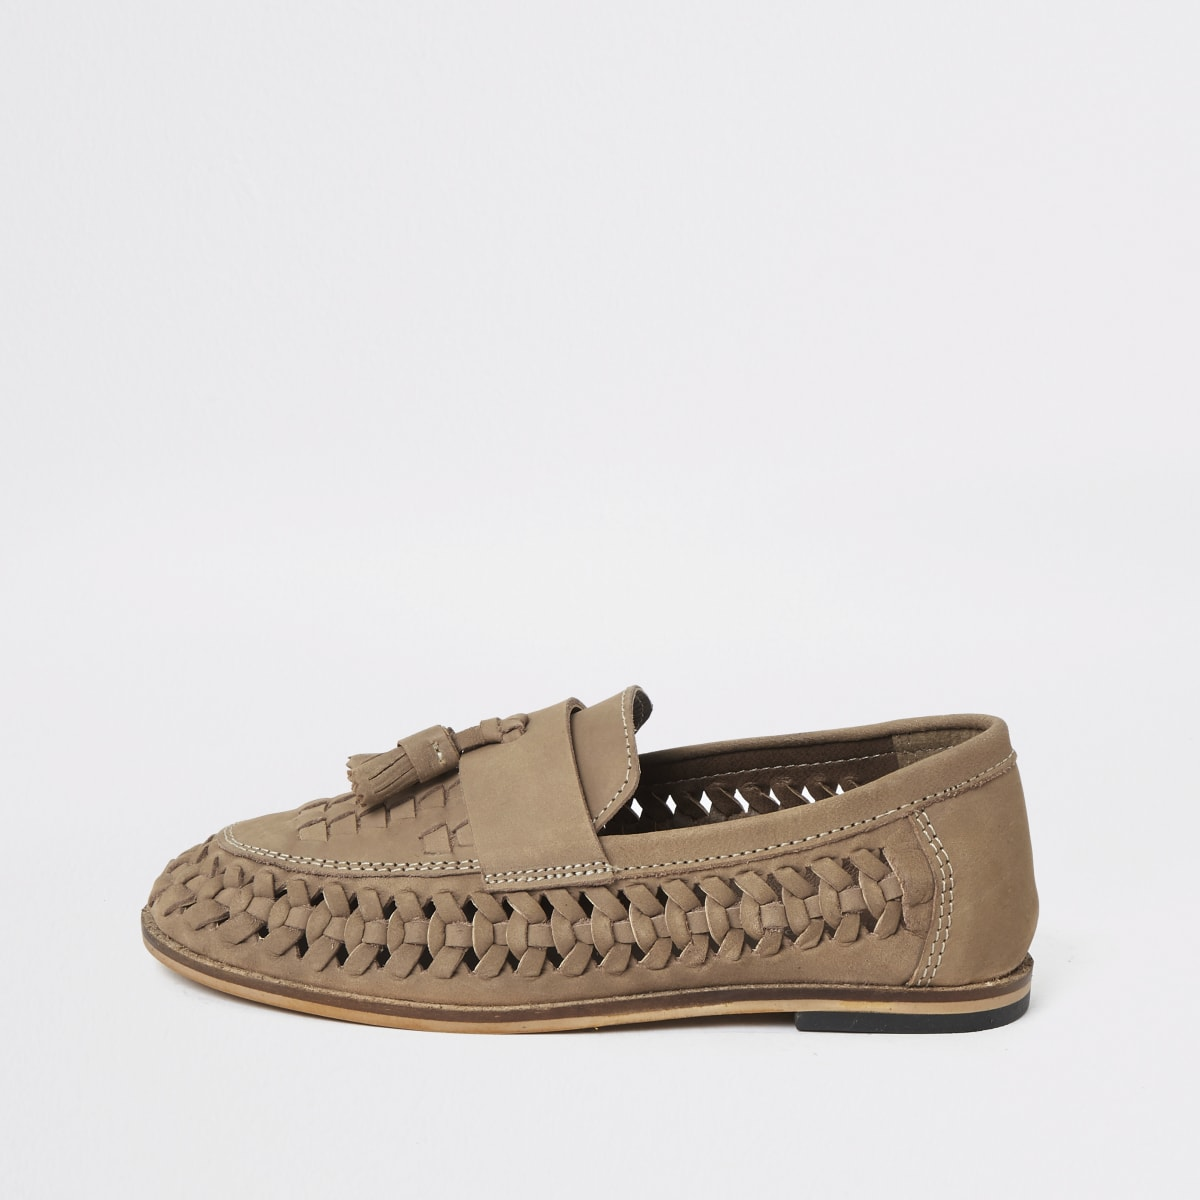 Boys light brown woven loafers